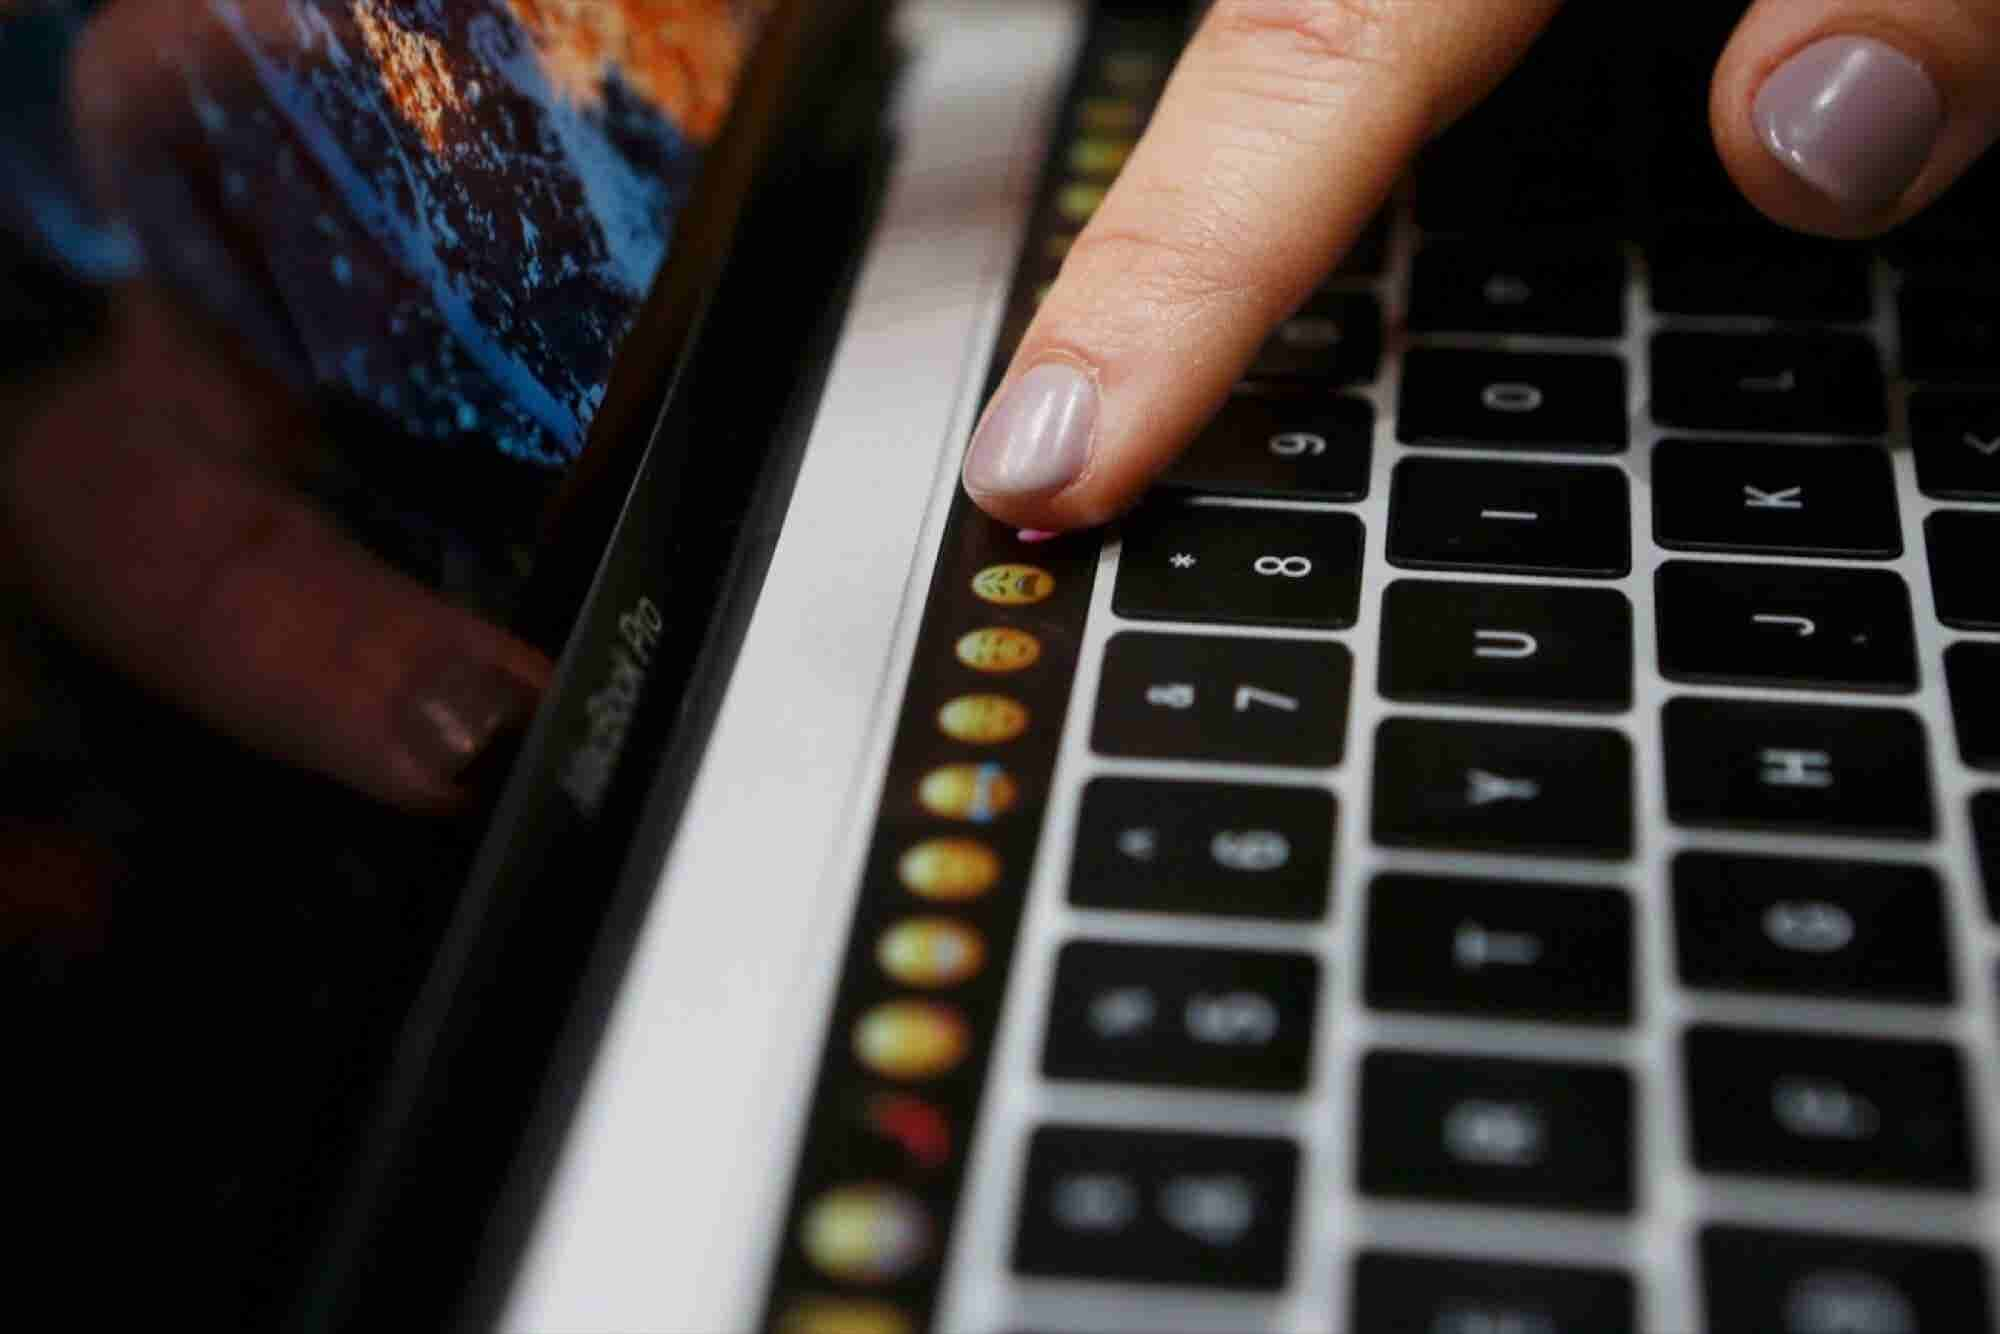 Apple Adds Touch Screen Keys to MacBook Pro